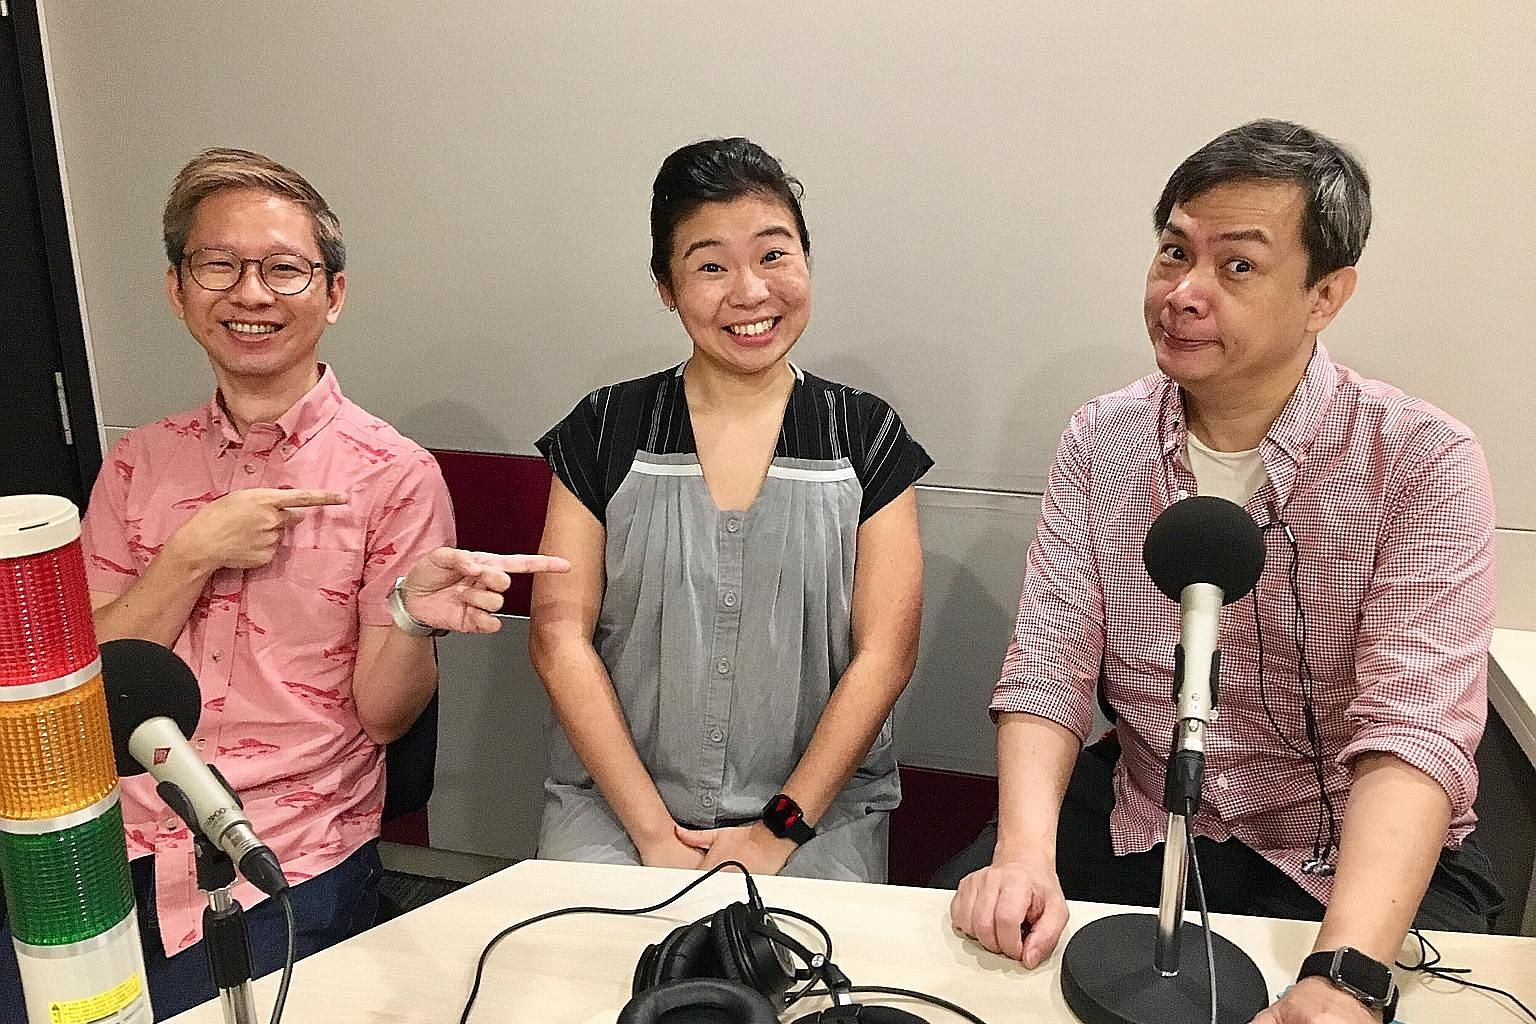 Life writers (from far left) Boon Chan, Melissa Sim and John Lui chat about the Widows film and upcoming concerts by Singapore singer Charlie Lim and Mandopop star Khalil Fong.